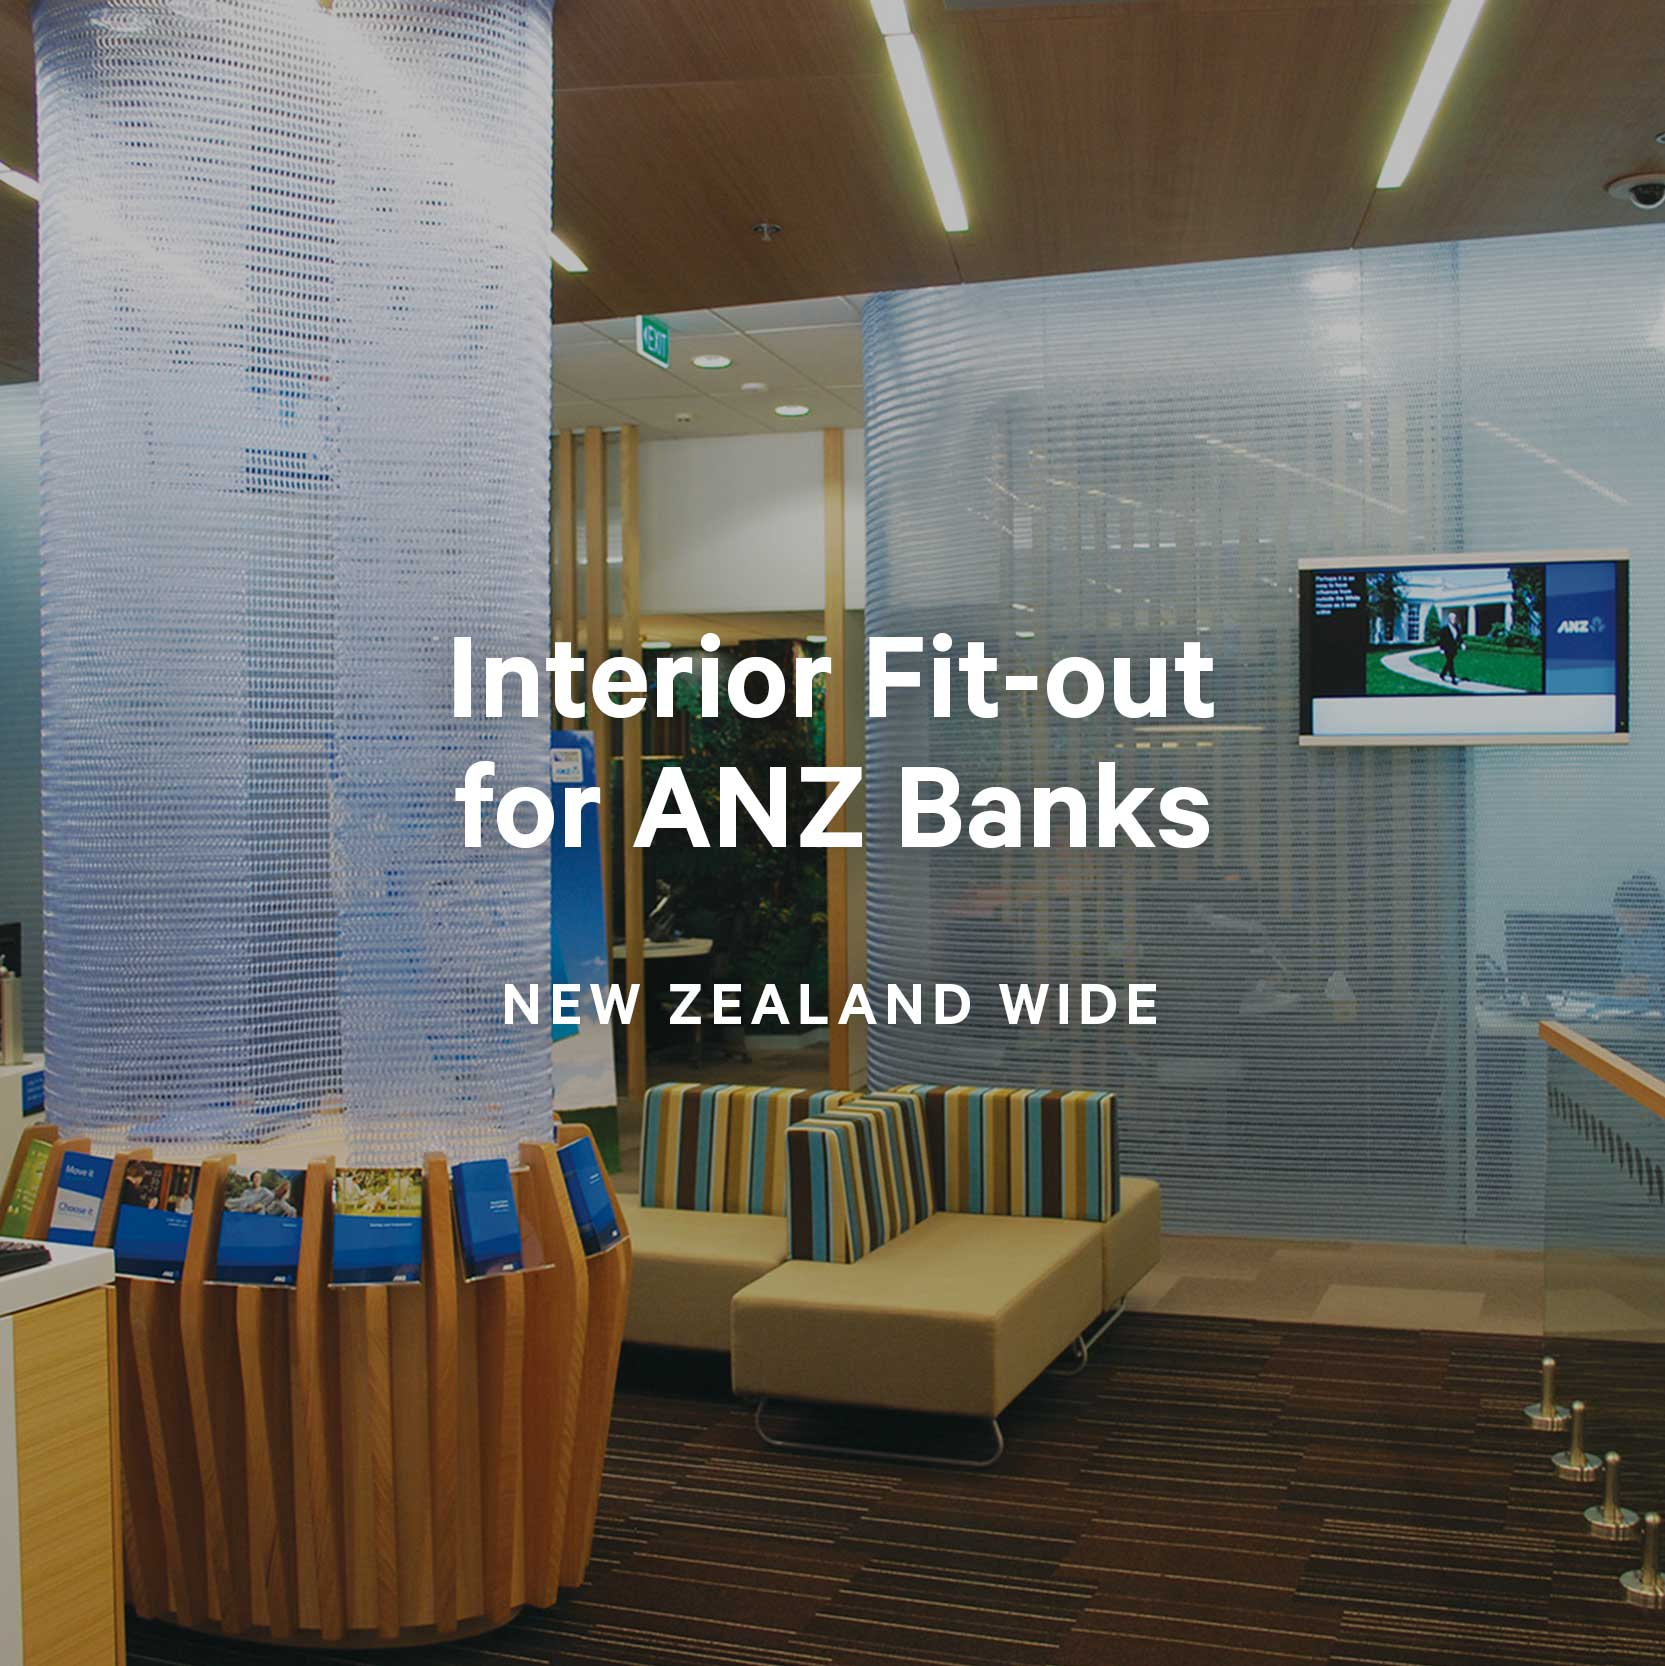 Interior Fit-out for ANZ Banks